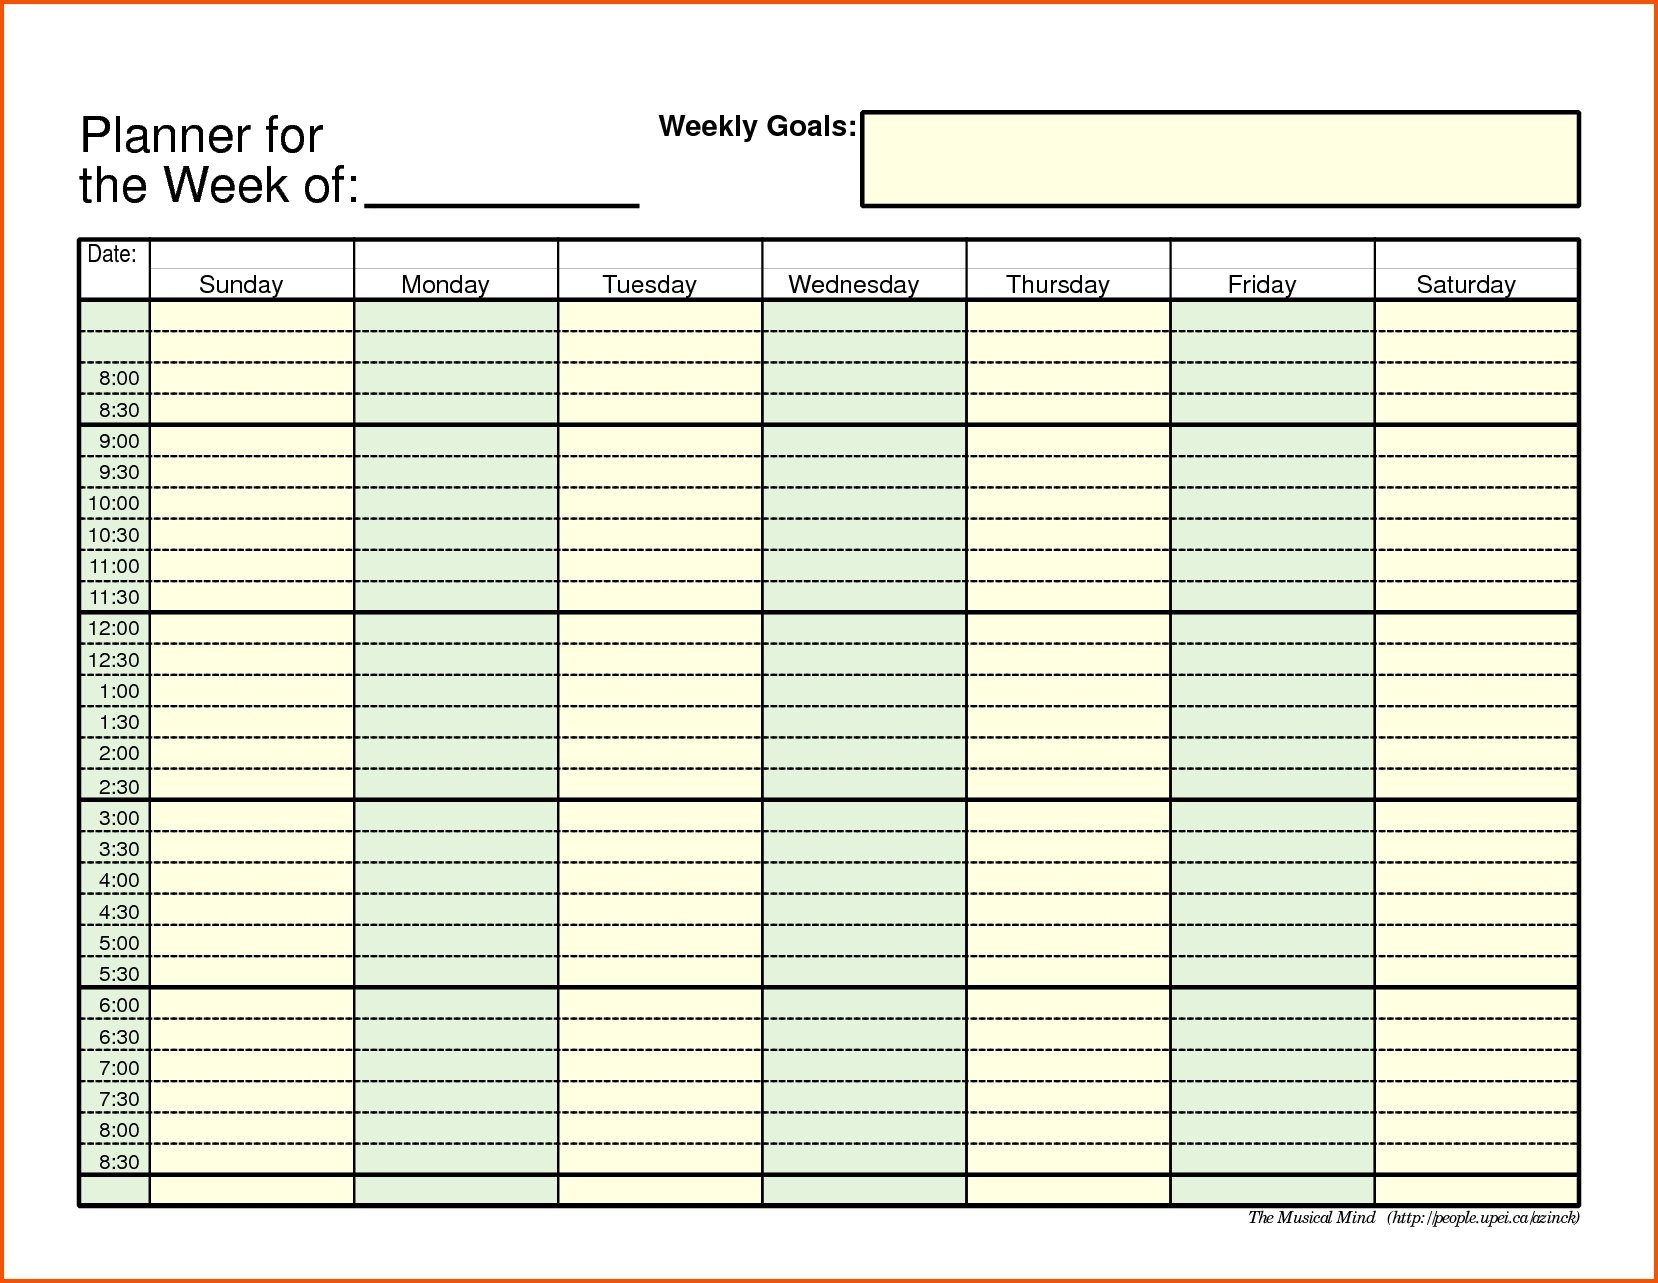 Weekly Schedule With Time Slots - Calendar Inspiration Design Free Weekly Planner With Time Slots